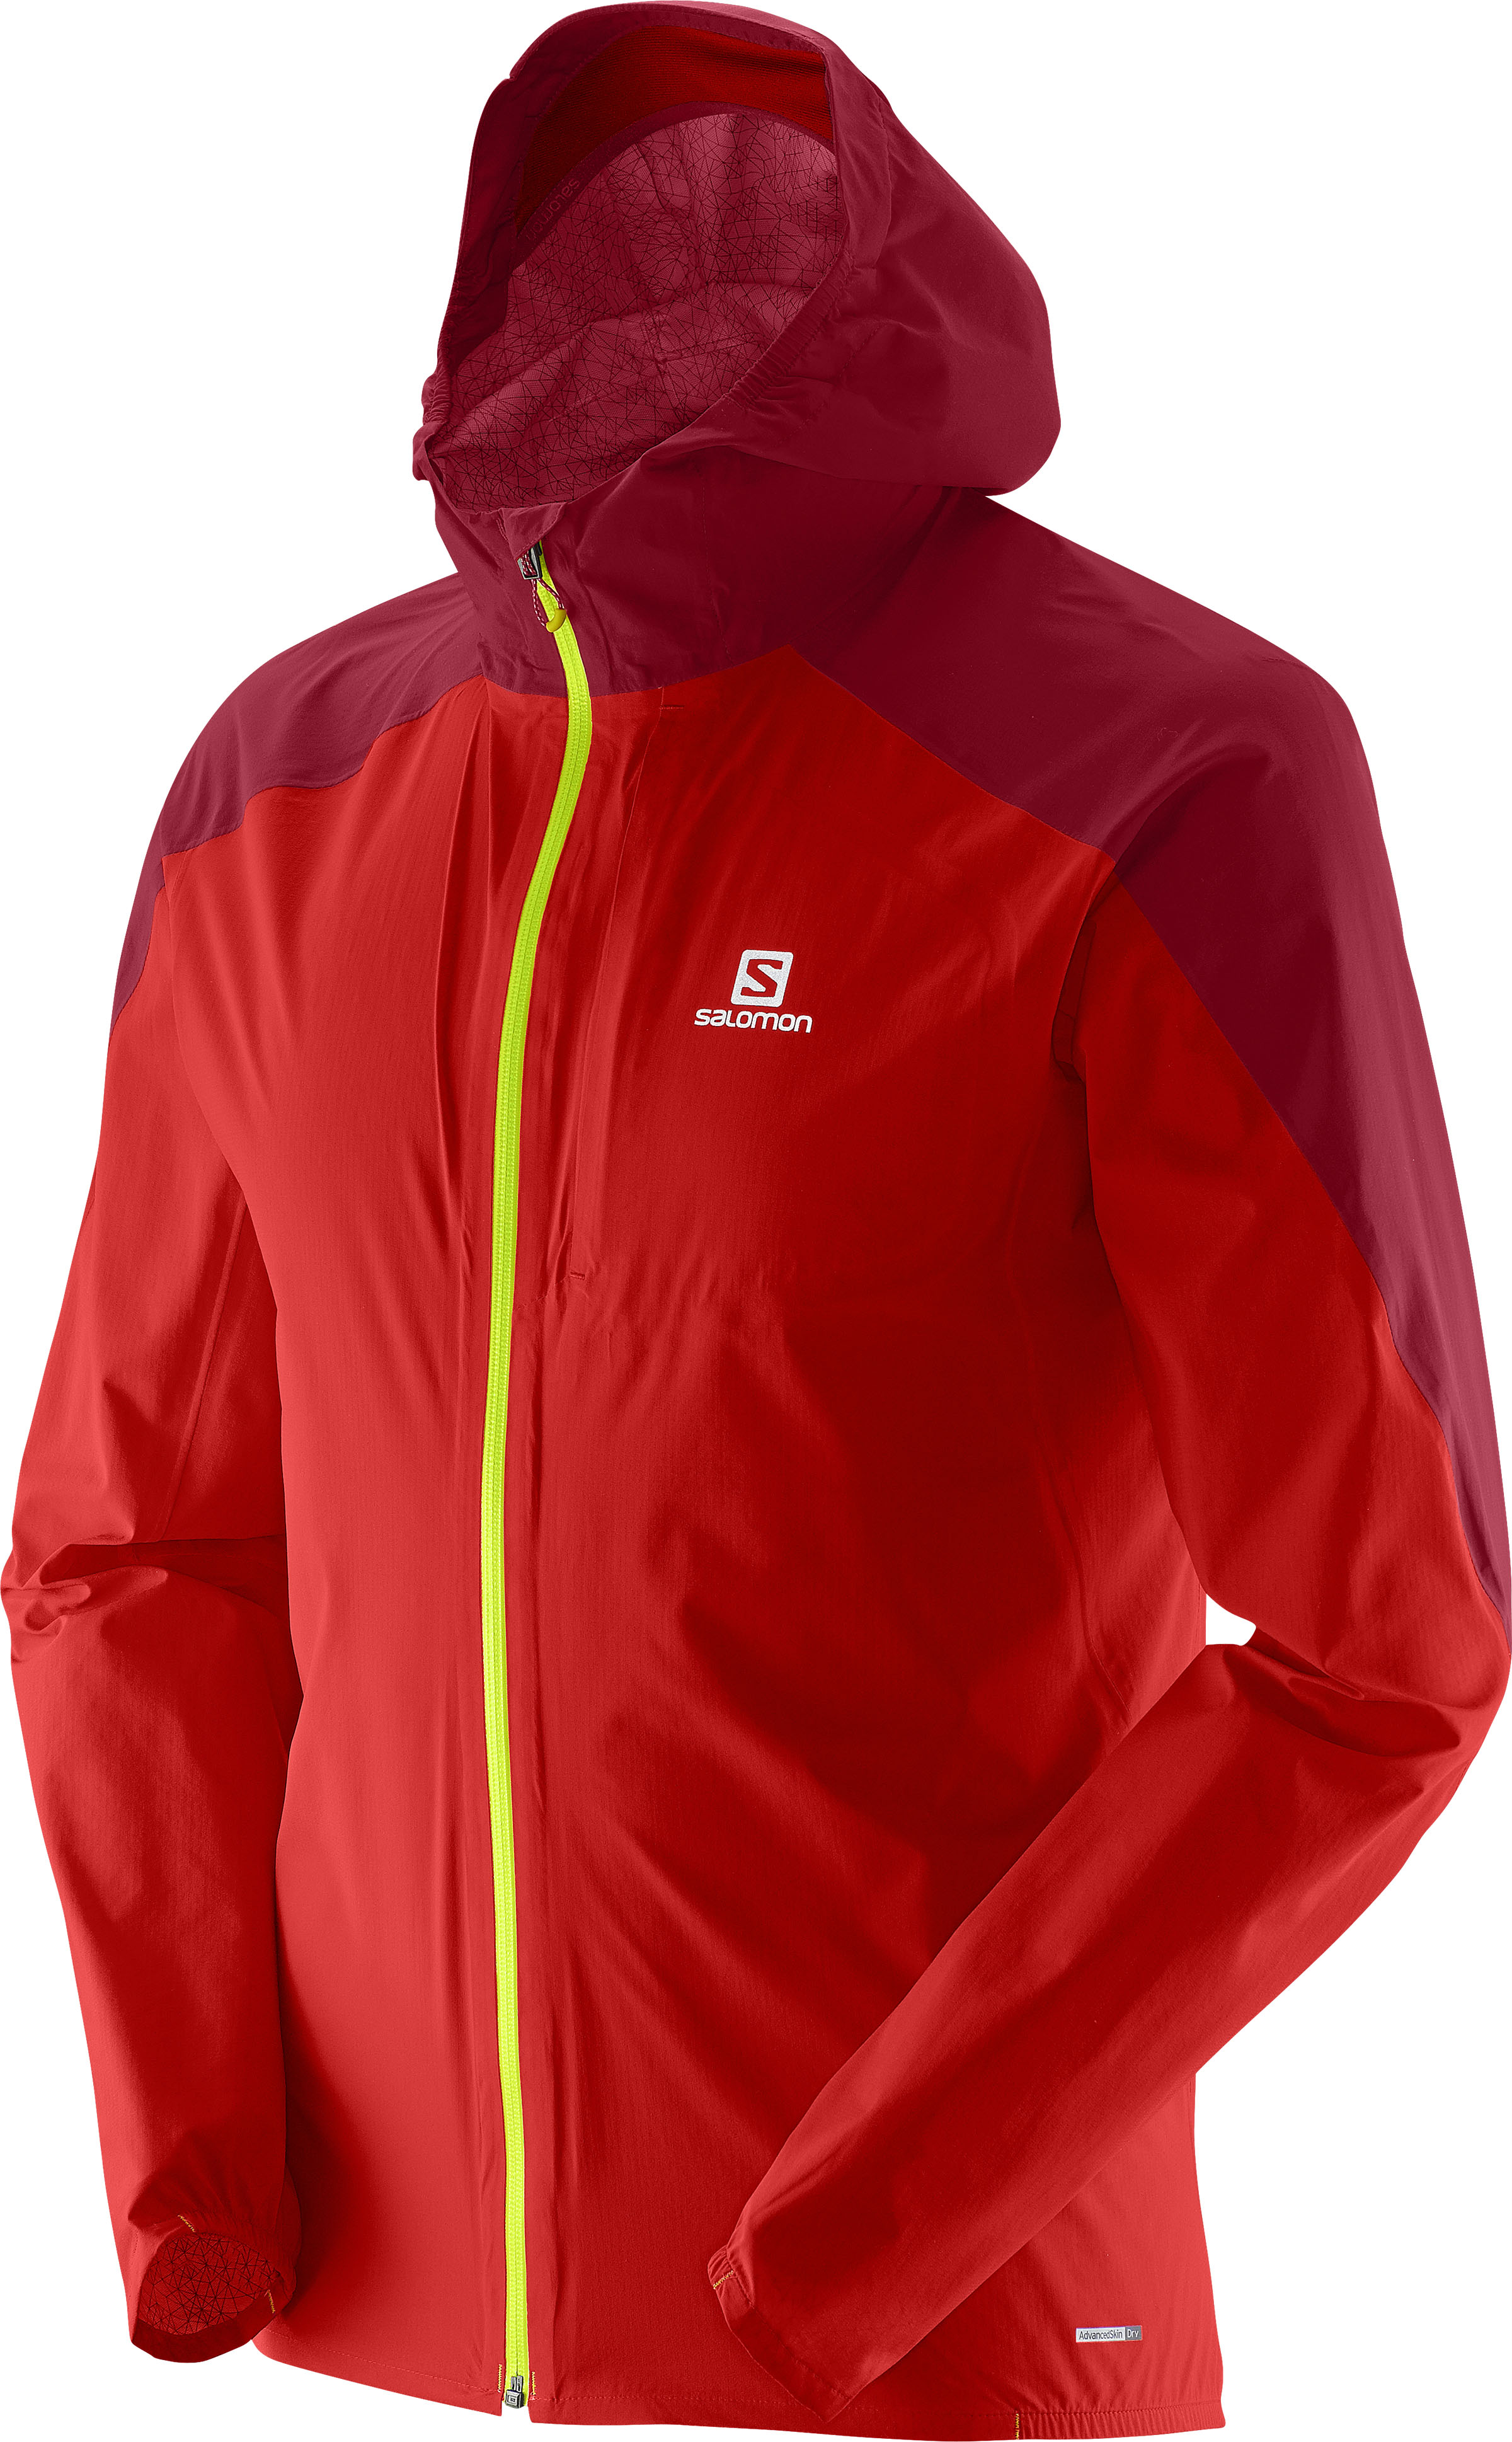 Salomon_BONATTI_WP_JACKET